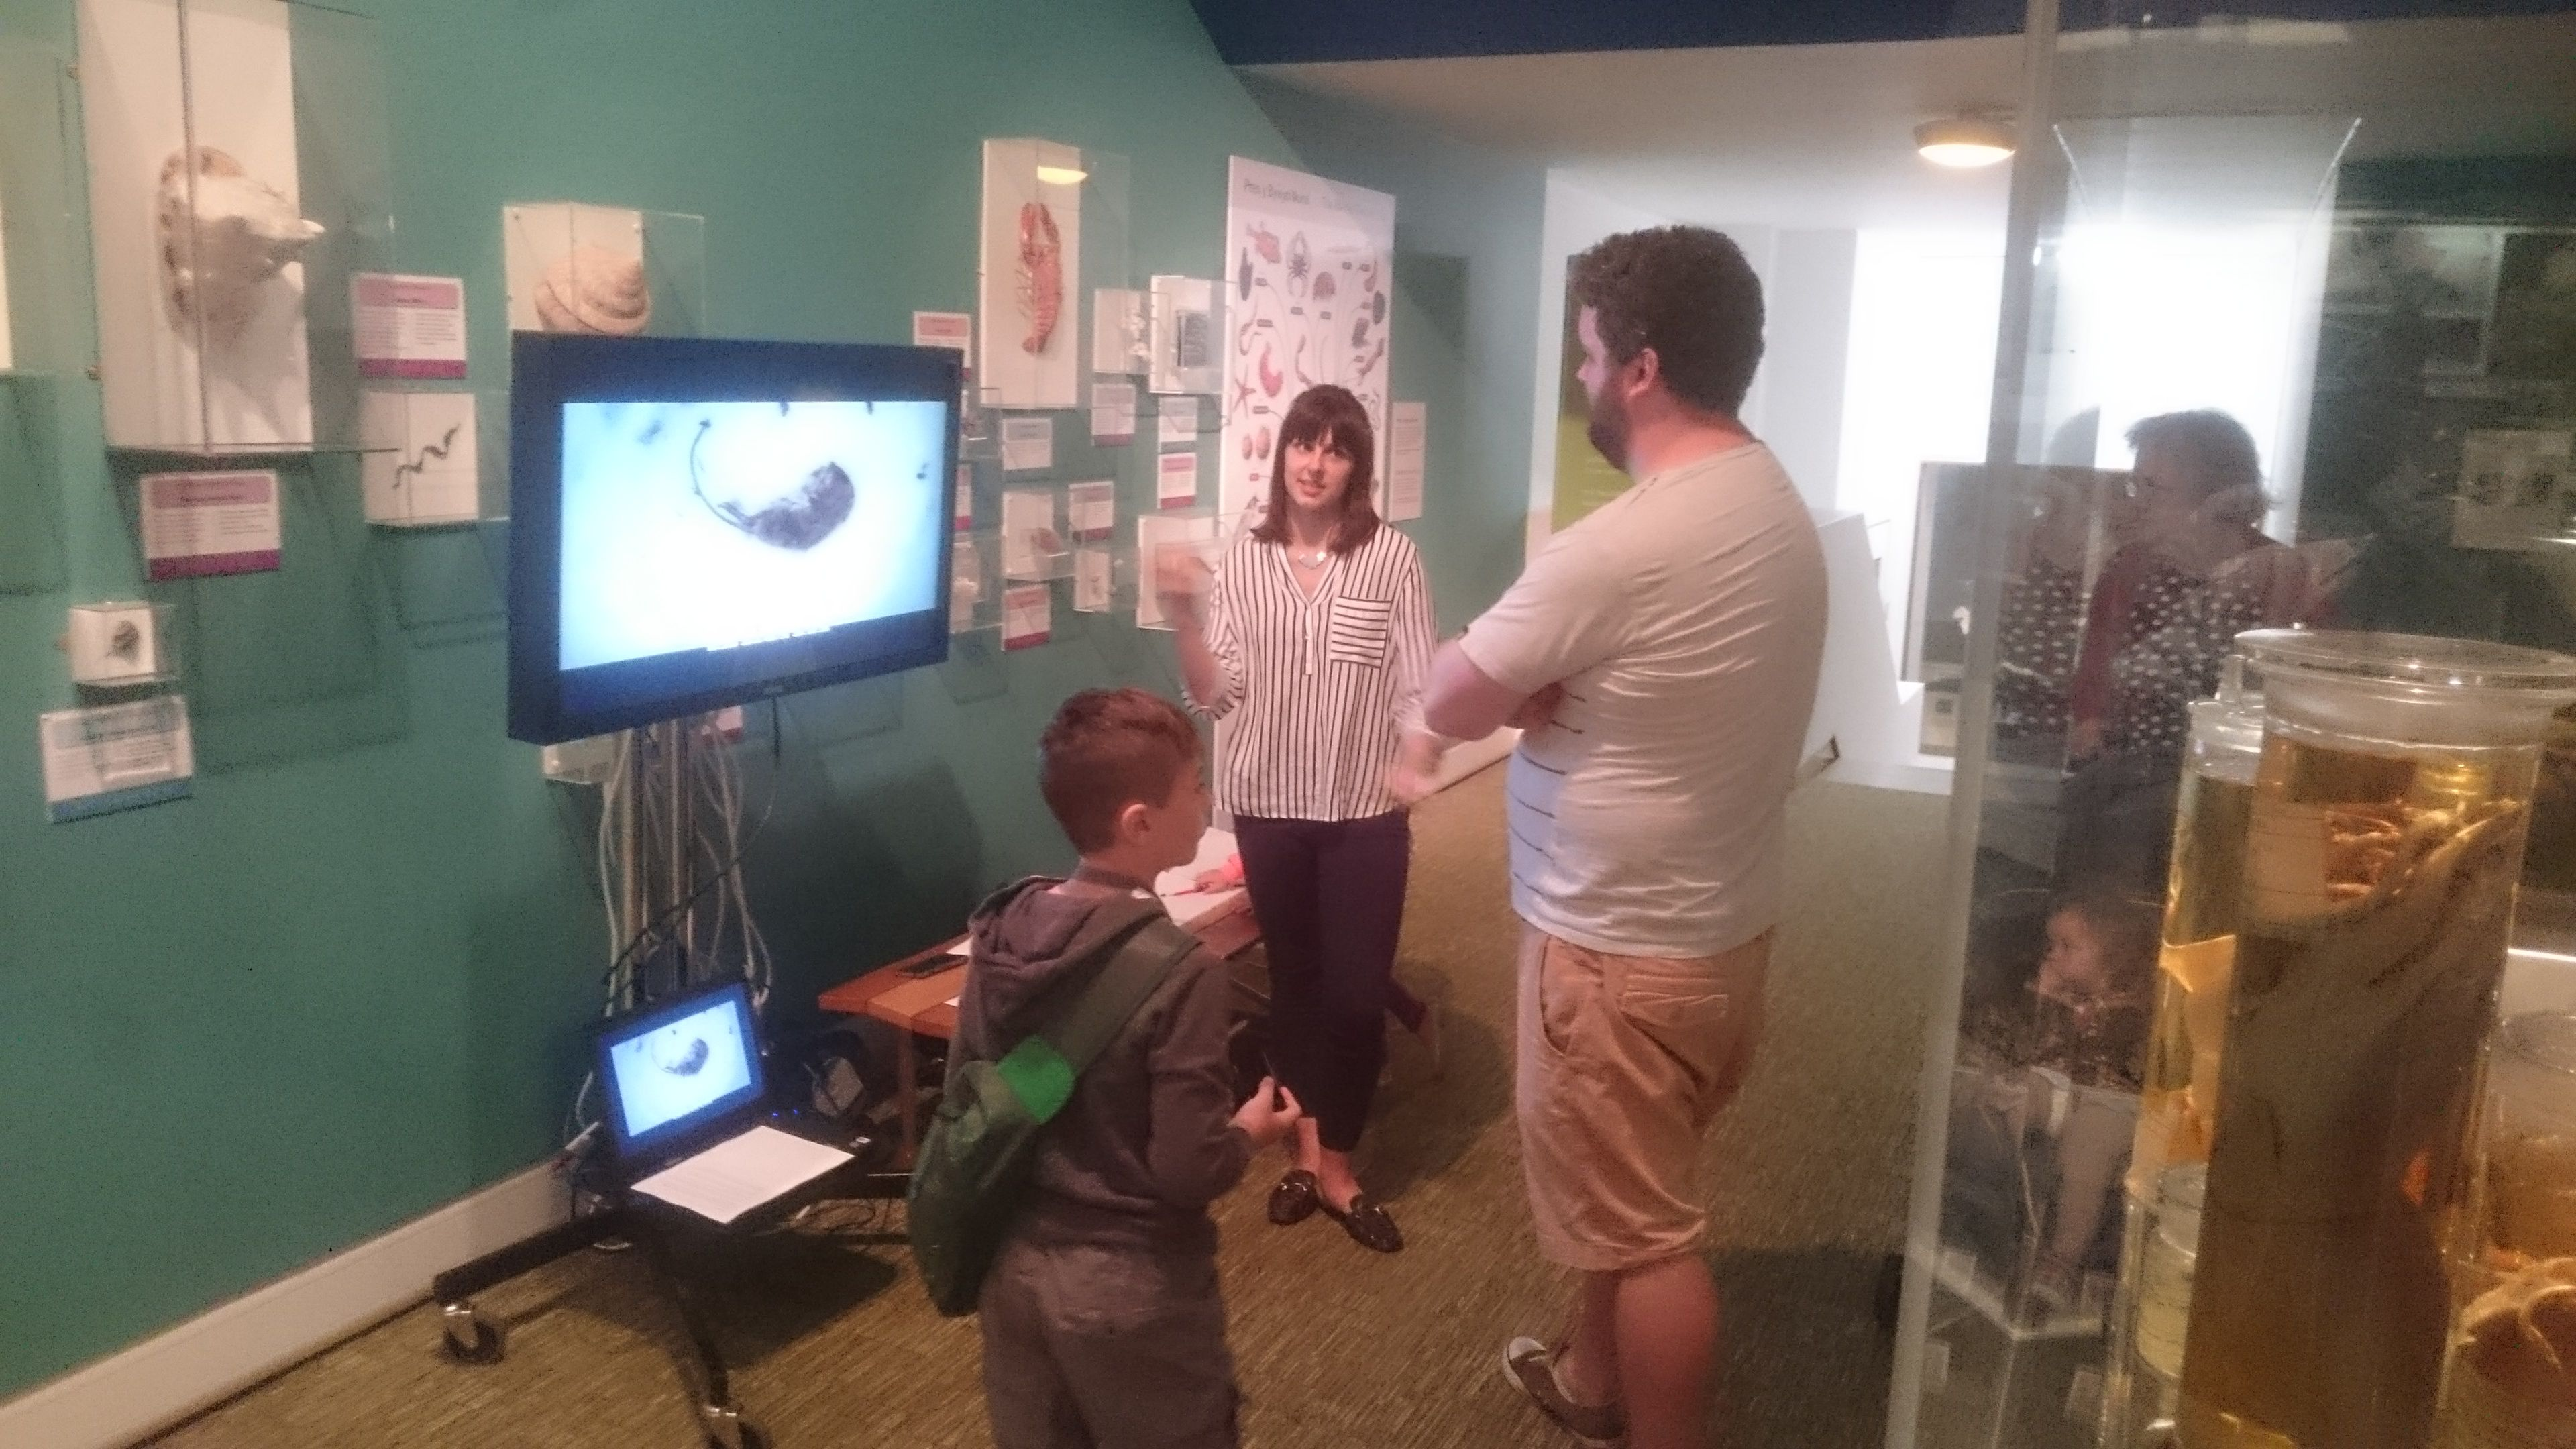 Charlotte Martin, UWE project student, undertaking museum user evaluation of time lapse video.